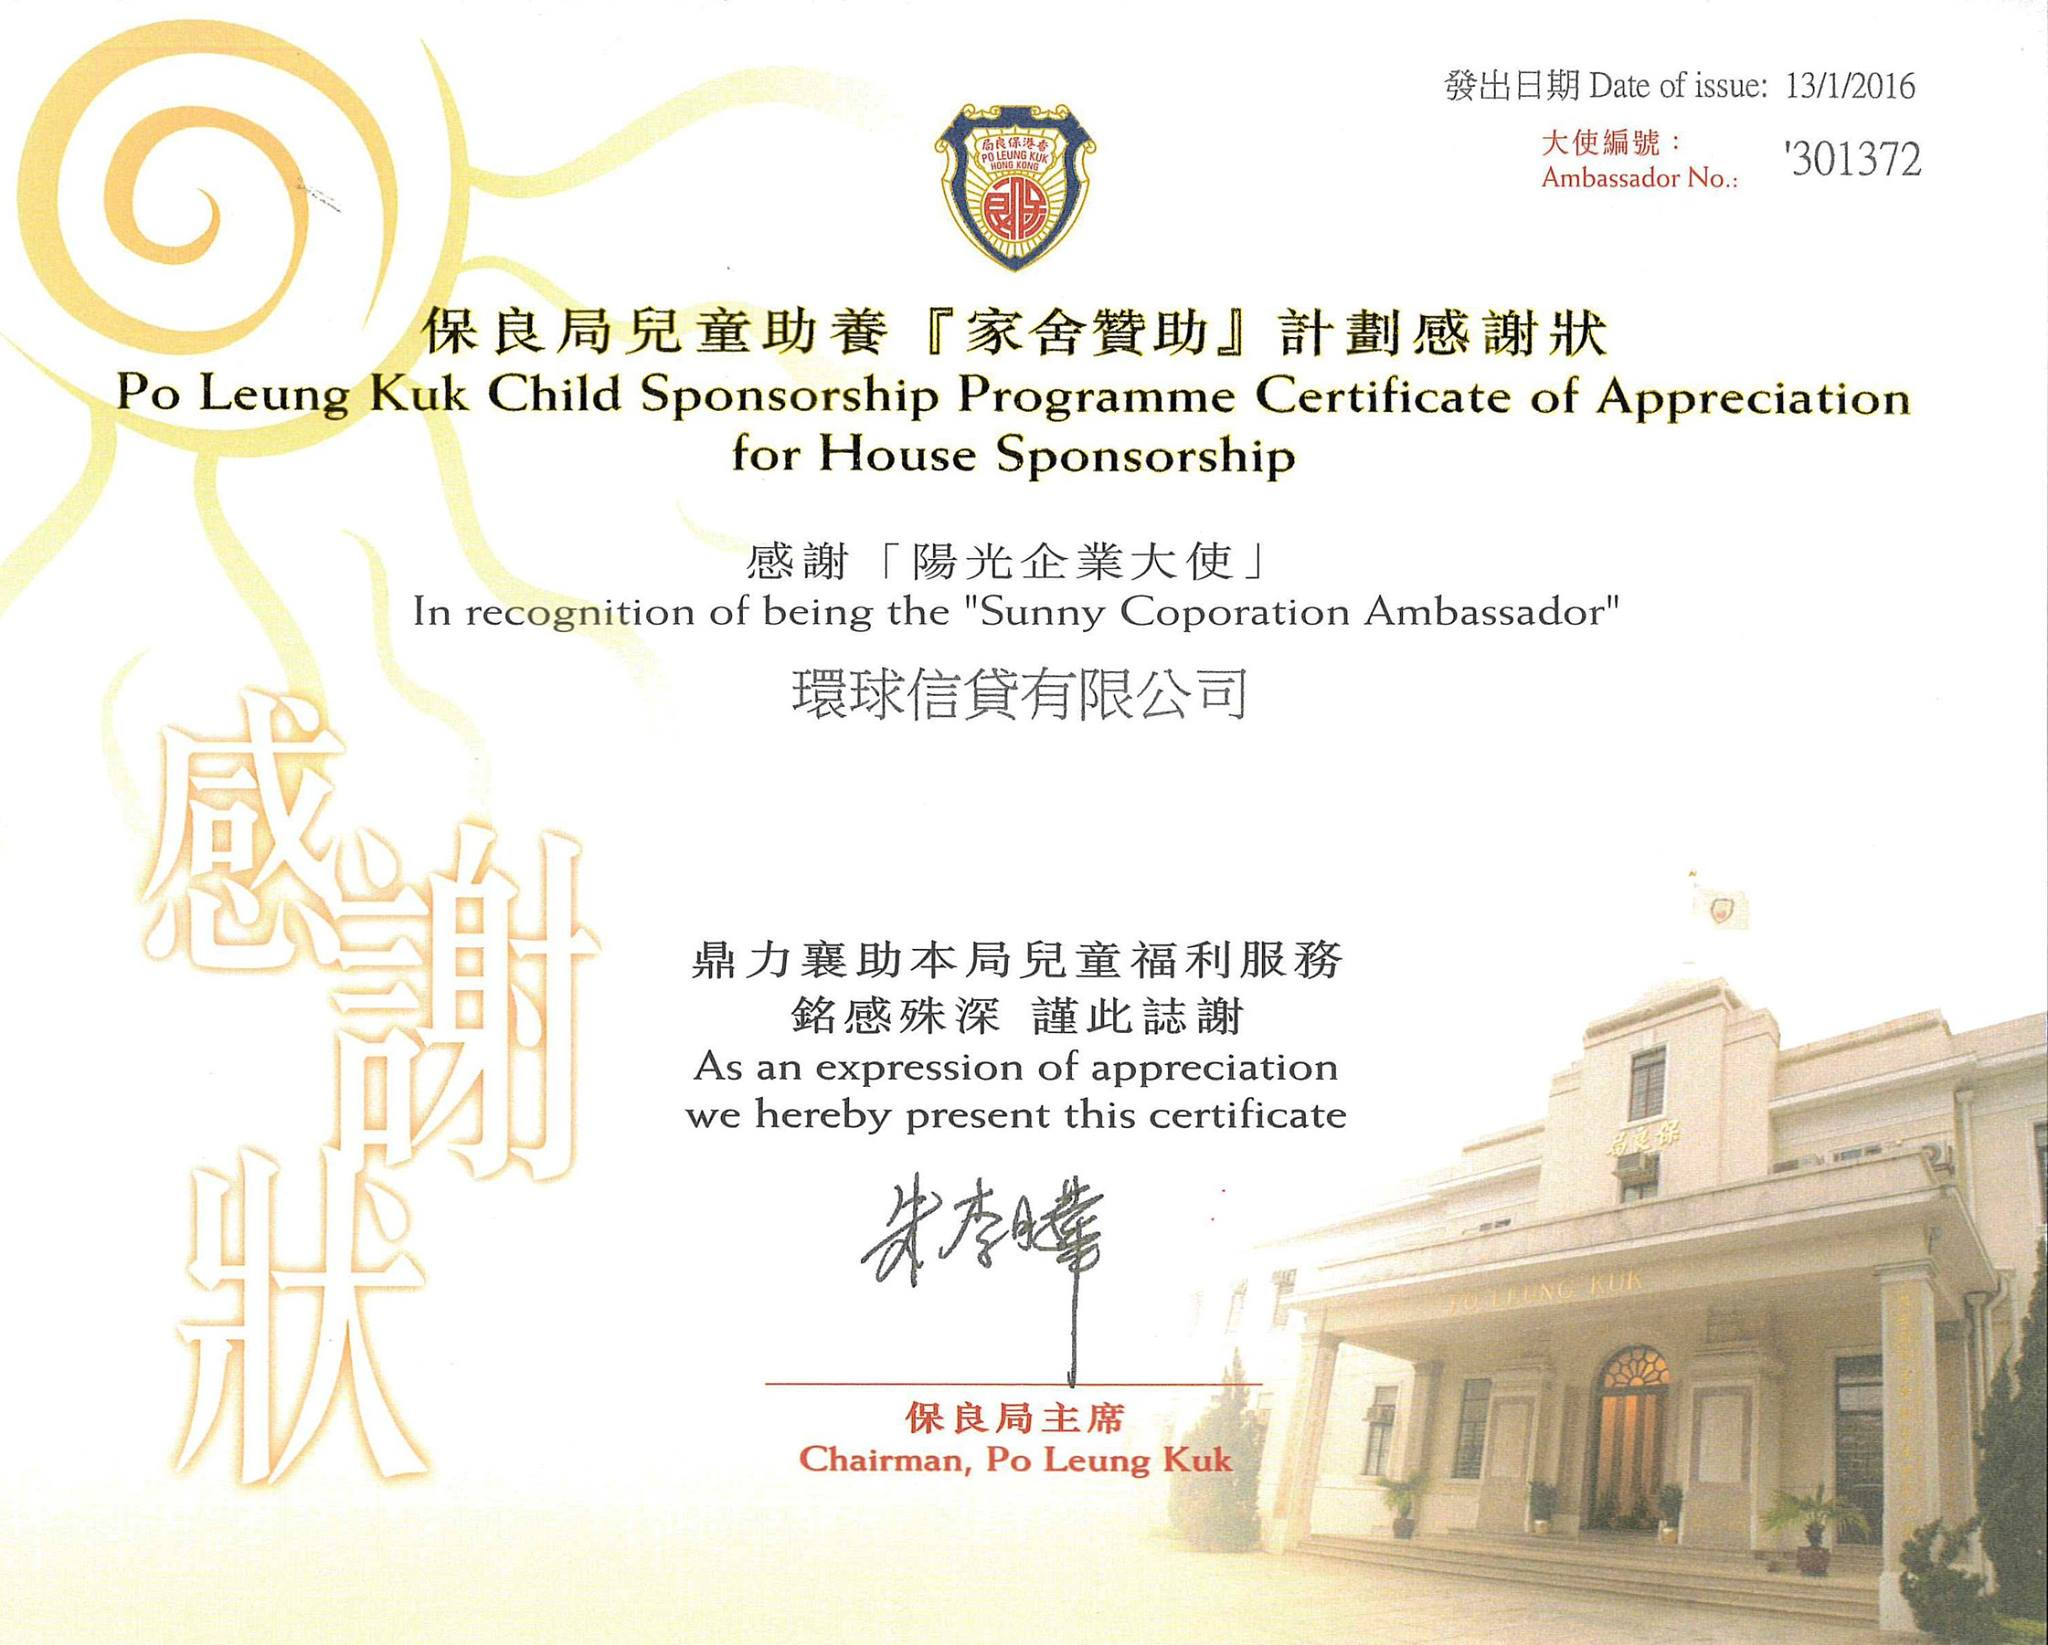 Po leung kuk child sponsorship programme certificate of po leung kuk child sponsorship programme certificate of appreciation of house sponsorship sunny coporation ambassador yelopaper Choice Image